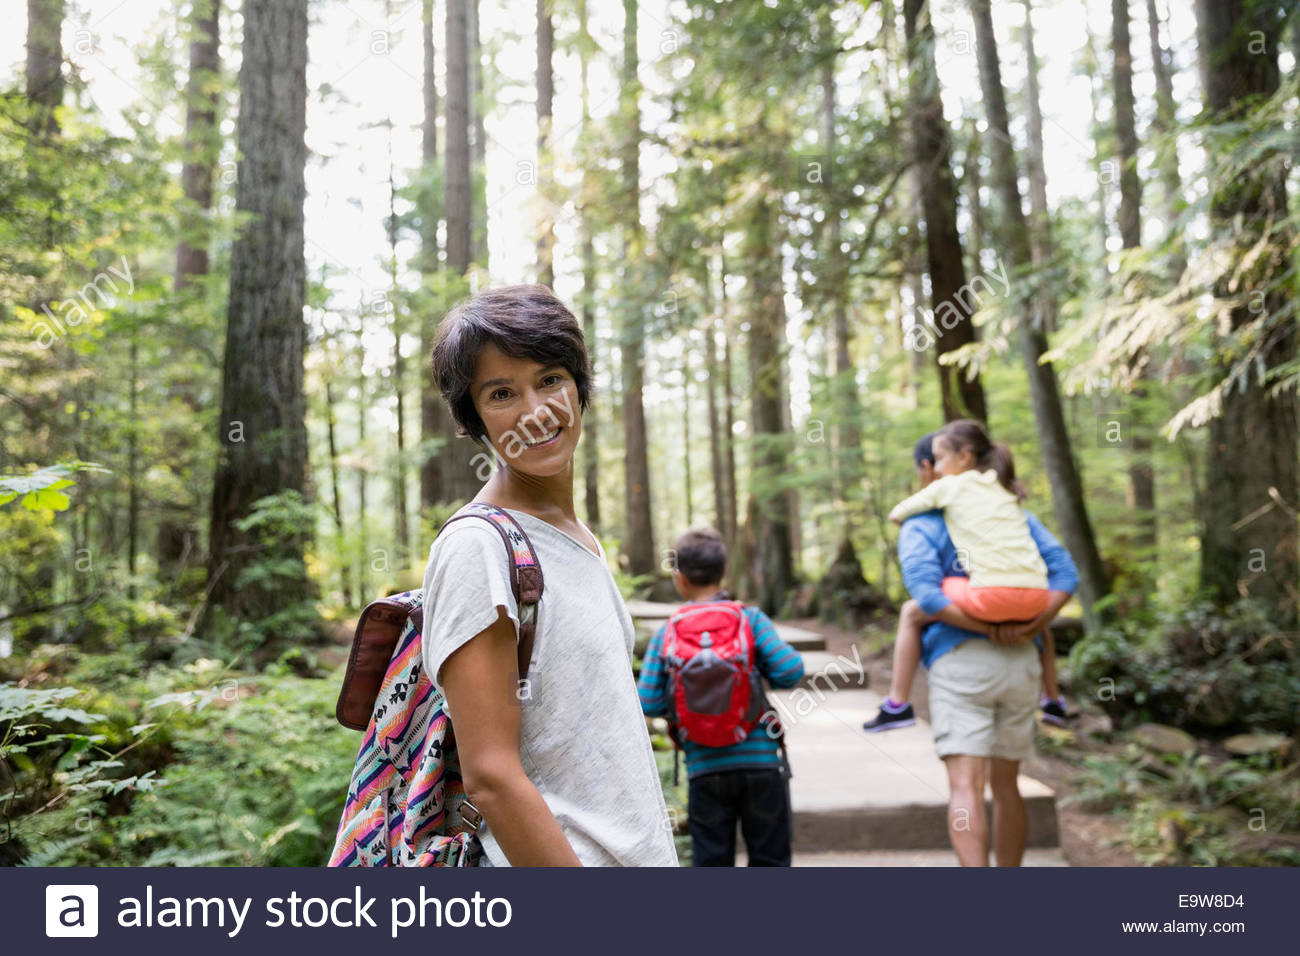 Portrait of smiling woman with family in woods Stock Photo